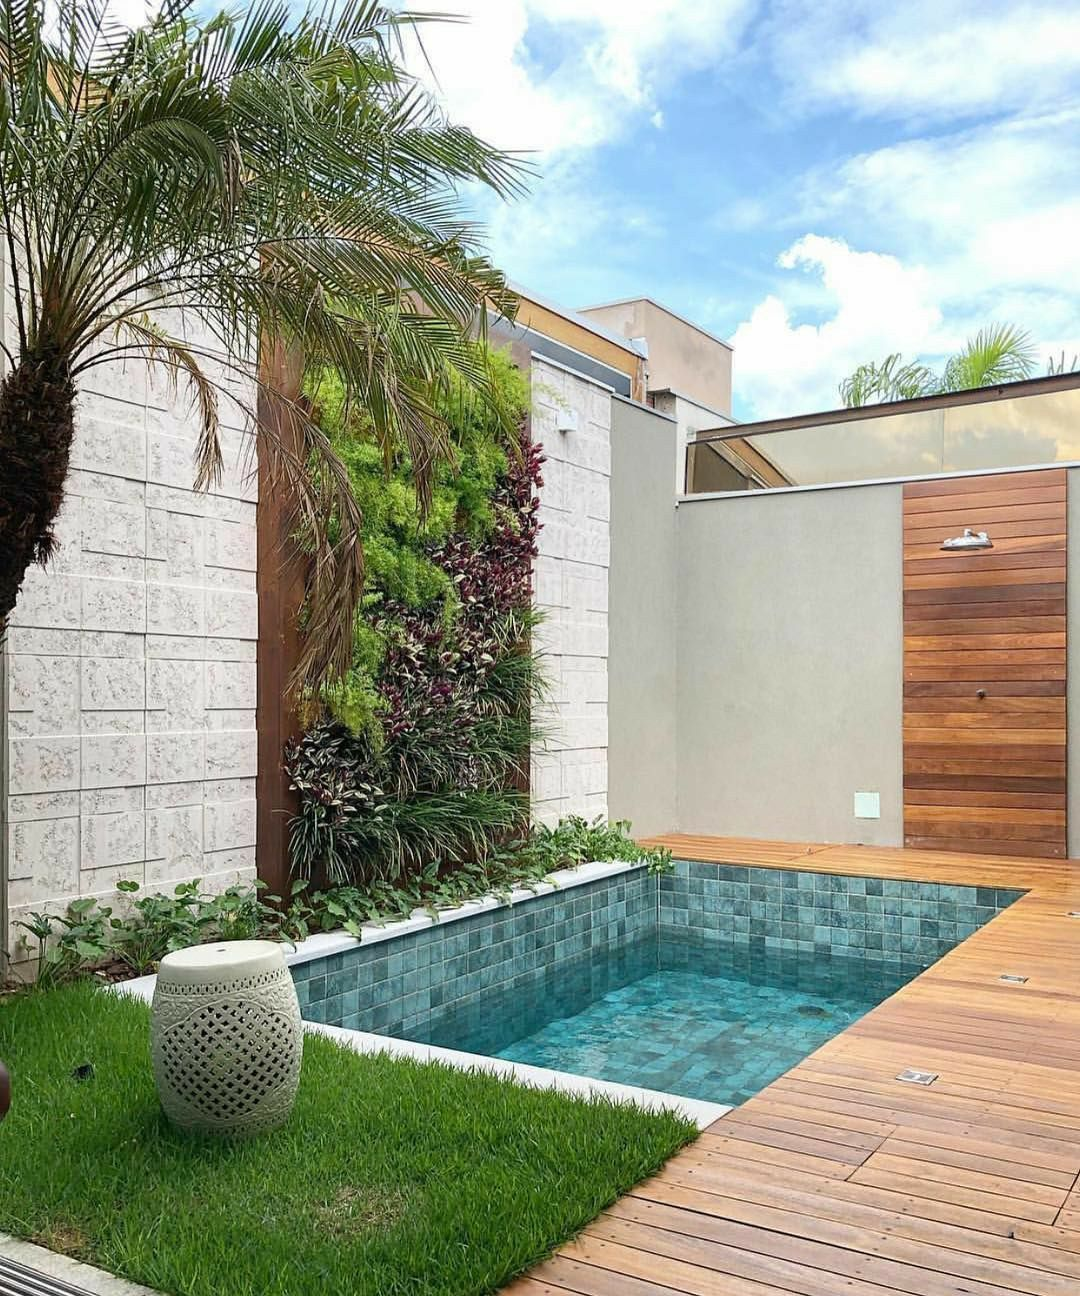 Small Backyard Pool With Wooden Decking And Grass Turf